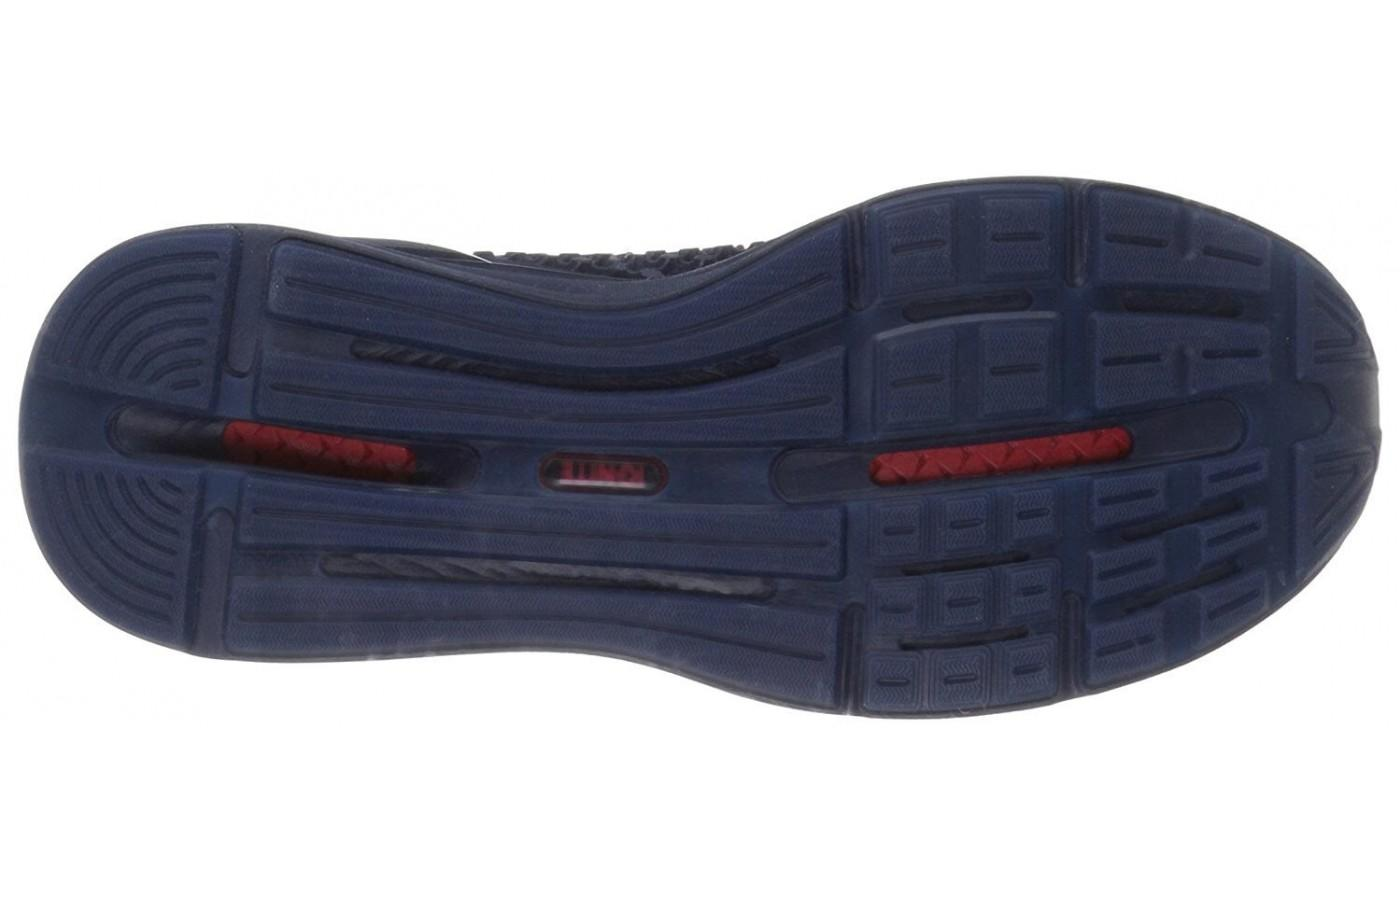 The traction on the underfoot makes this a great choice for courts or fitness classes.